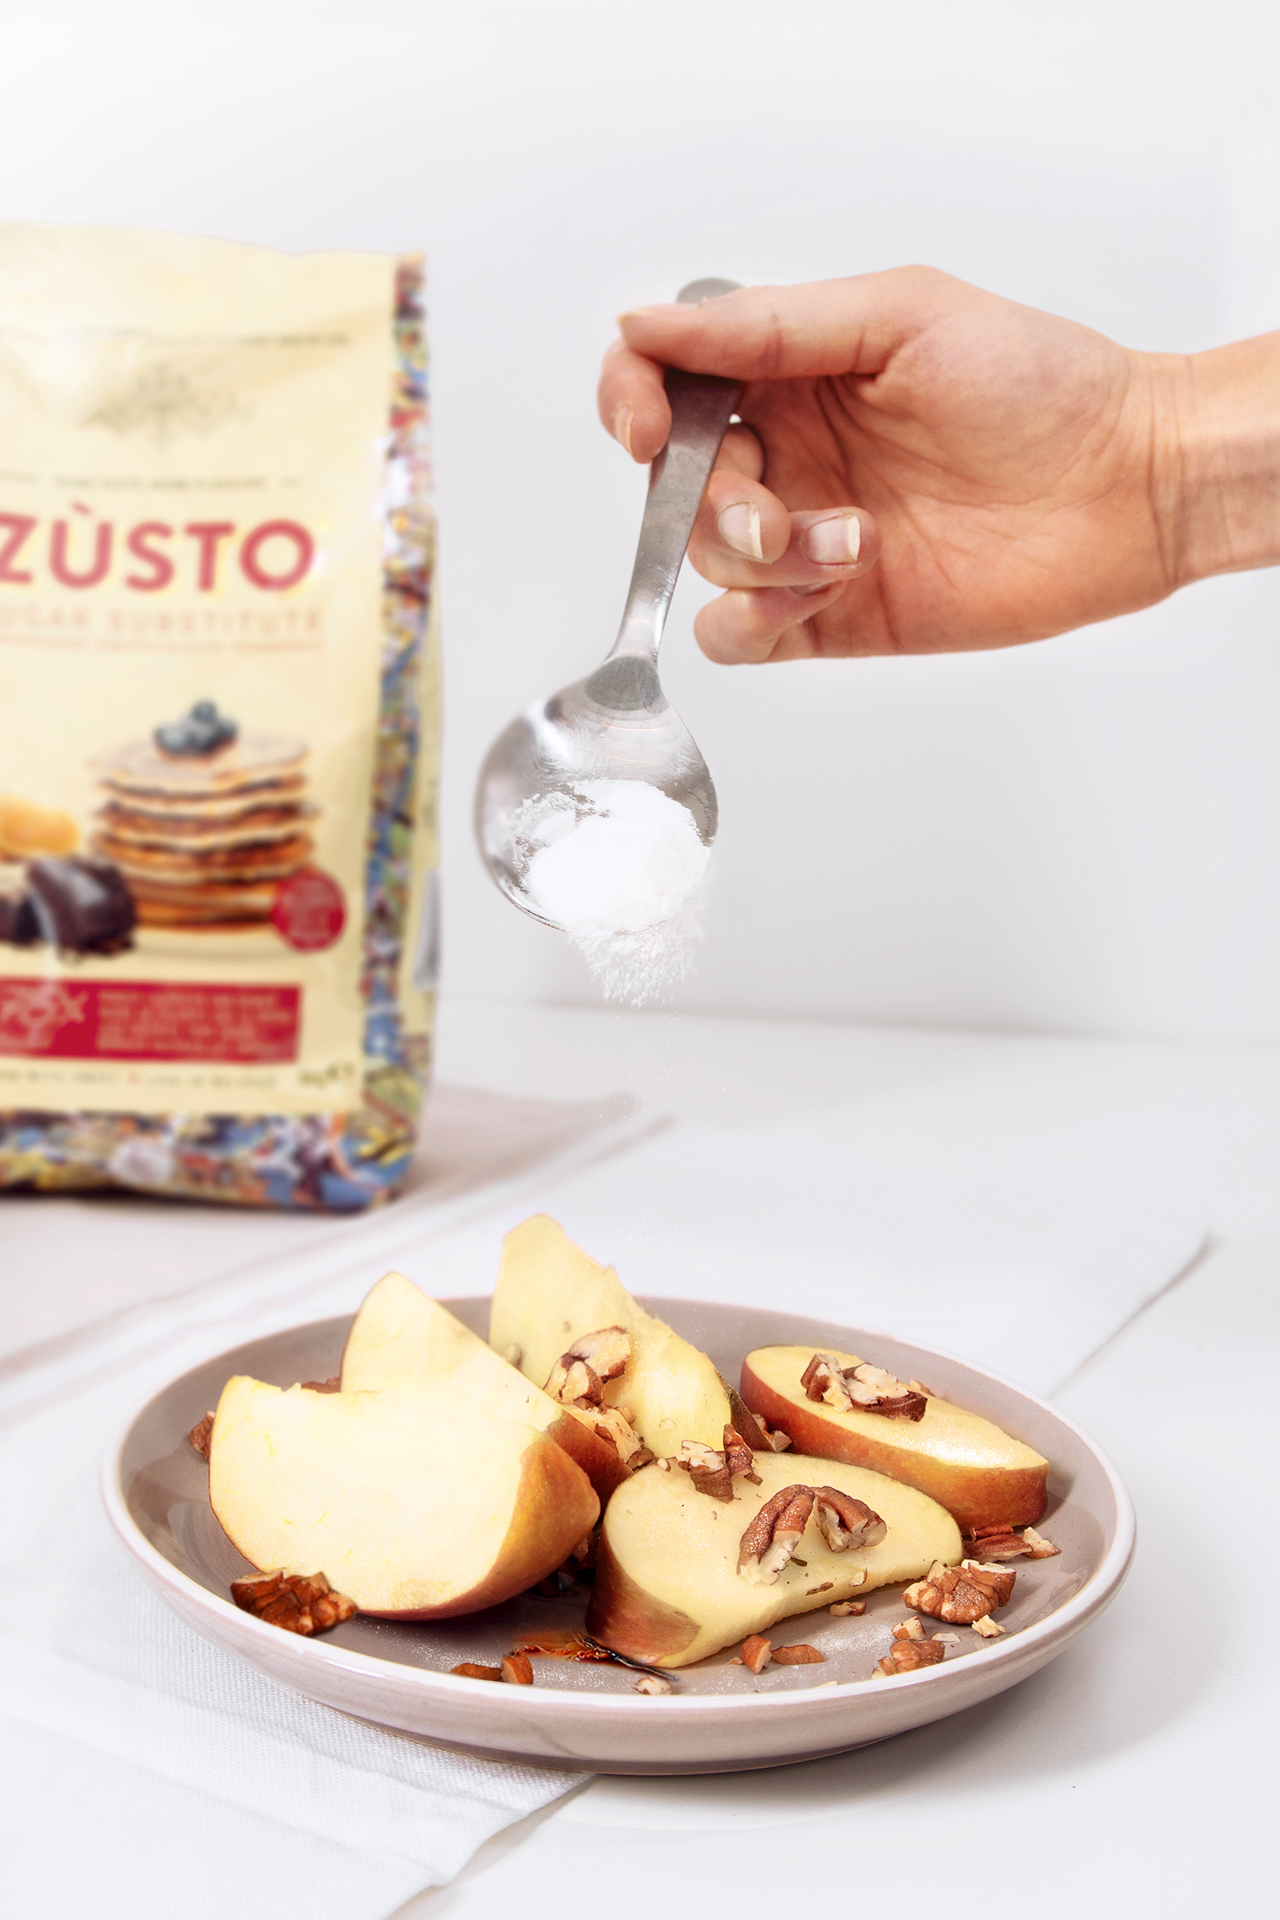 Zùsto one to one to sugar